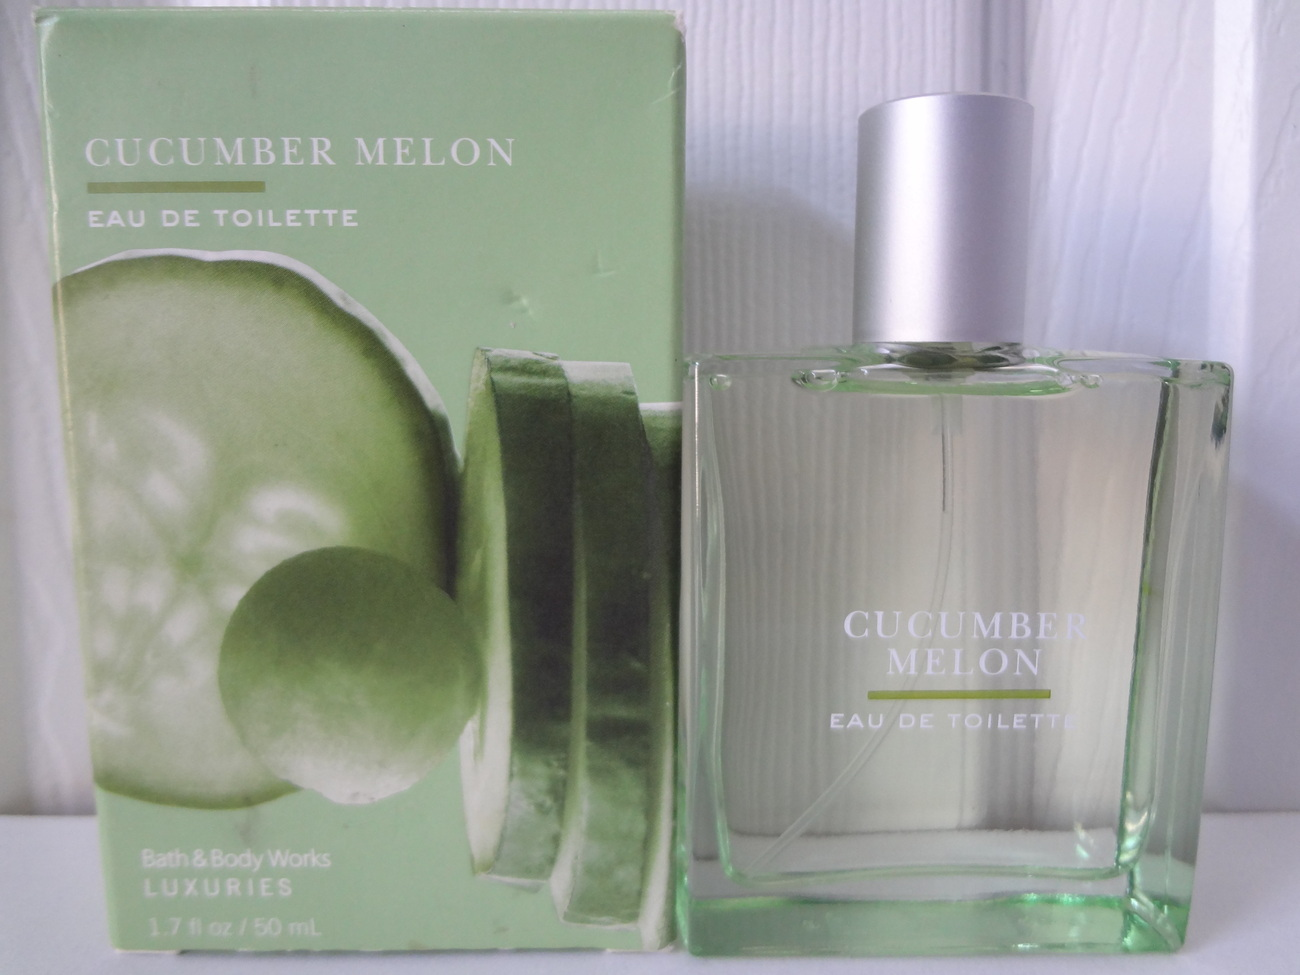 Bath & Body Works Luxuries Cucumber Melon Eau de Toilette 1.7 oz / 50 ml